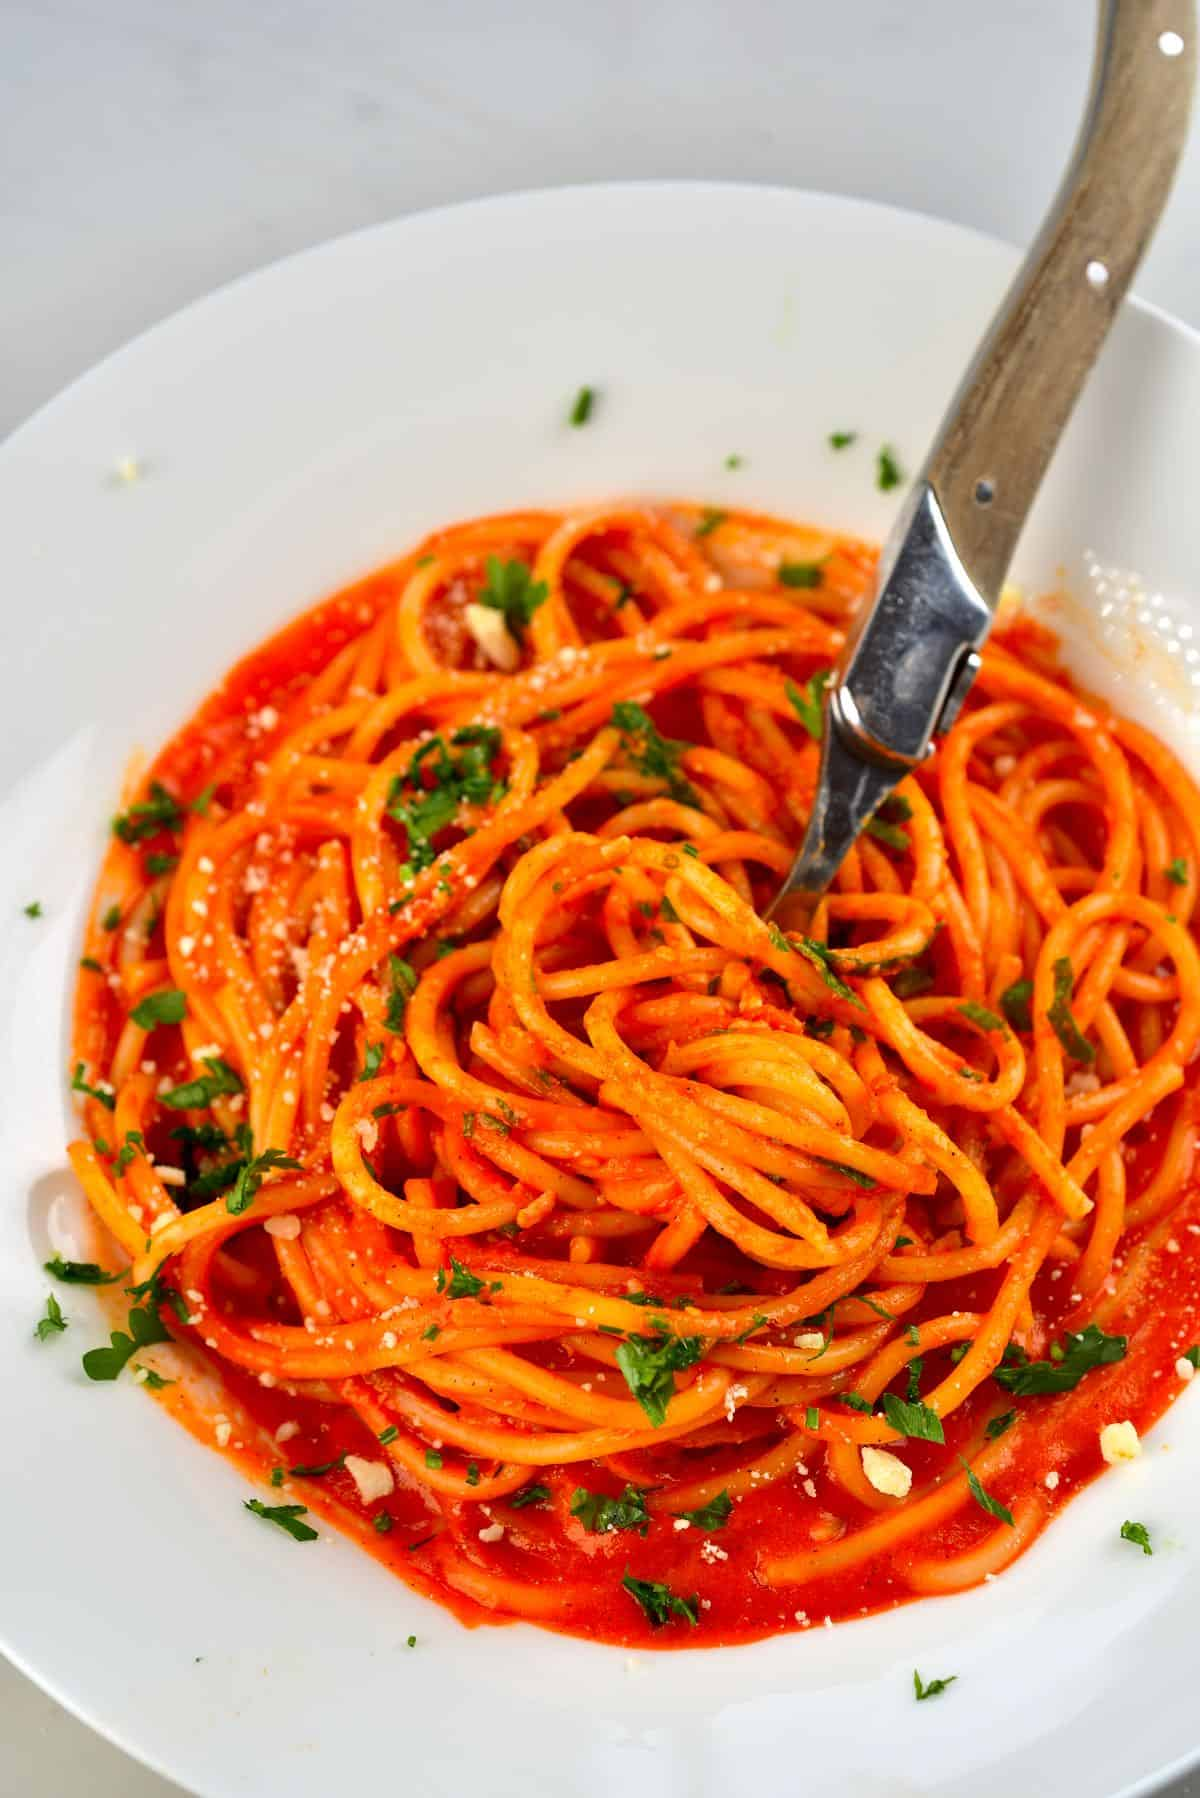 Roasted Red Pepper Sauce Pasta in a plate with a fork